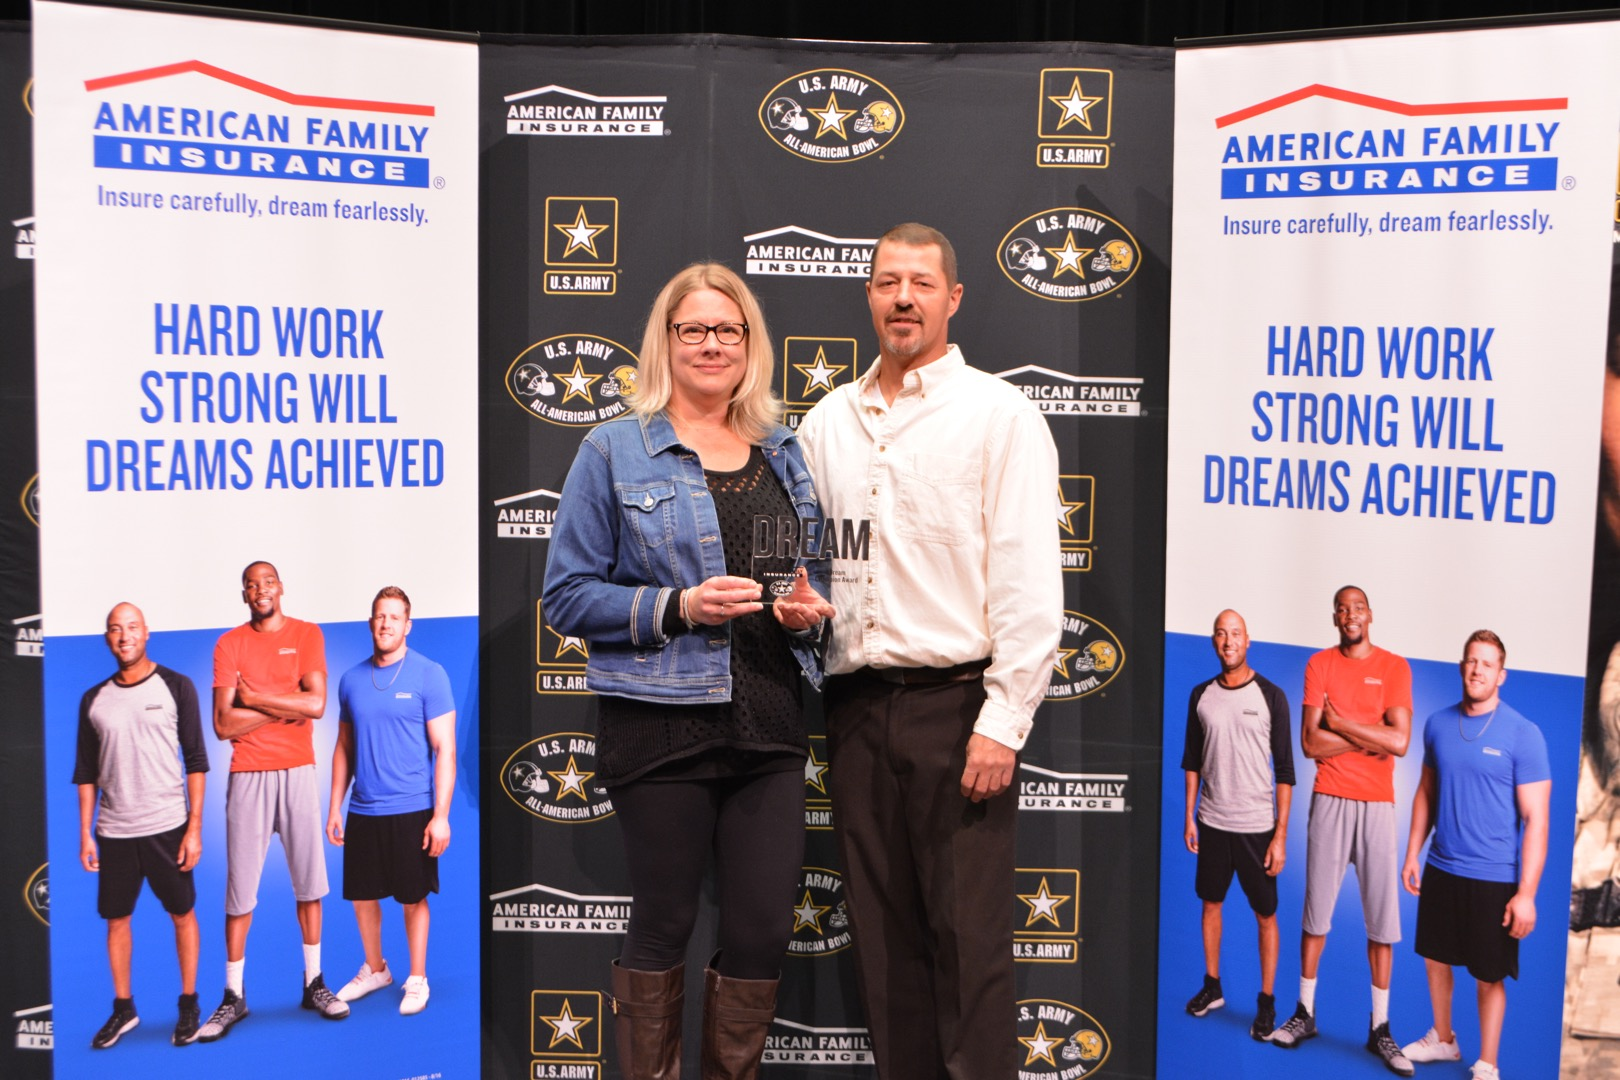 Linda and Paul Granzow, the parents of Lake Orion High senior U.S. Army All-American Color Guard member Emily Graznow, are presented with their daughter's American Family Insurance Dream Champion award. (Photo credit: U.S. Army All-American Bowl)